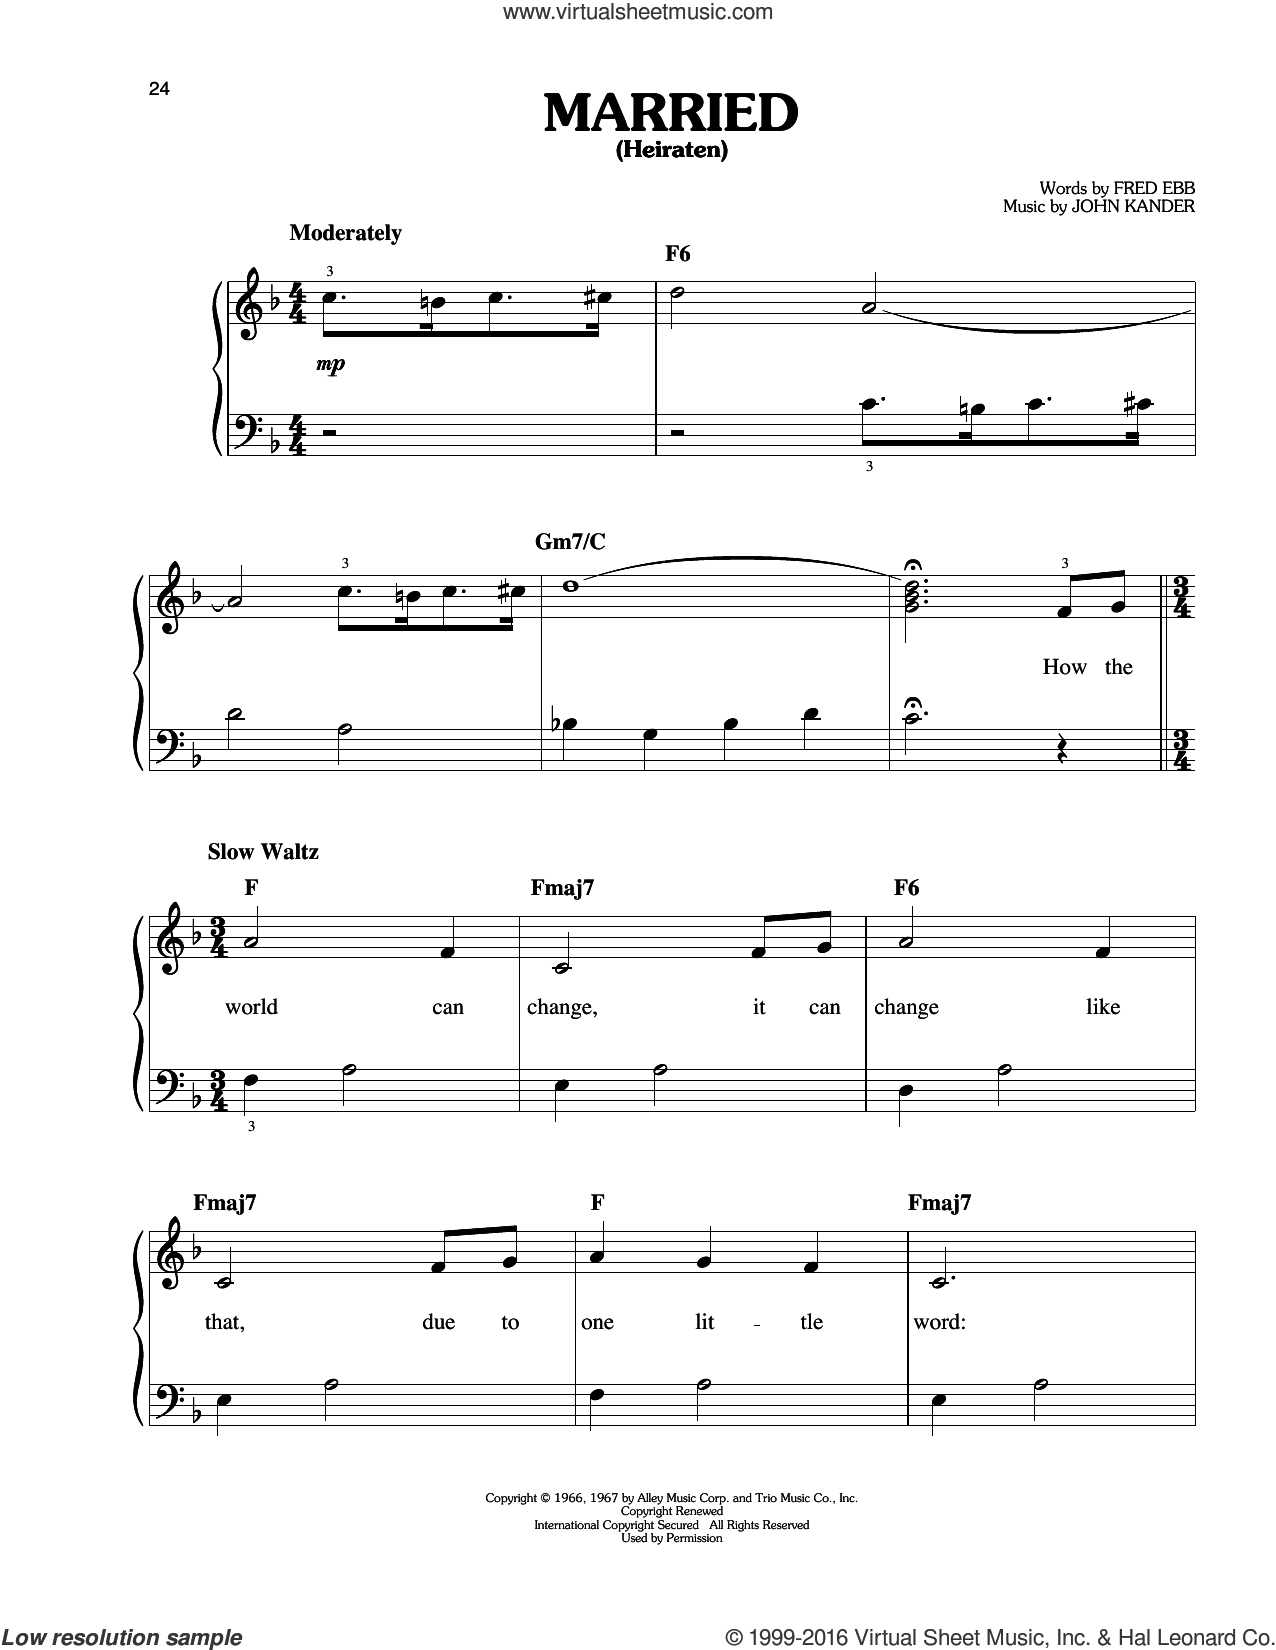 Married (Heiraten) sheet music for piano solo by Fred Ebb